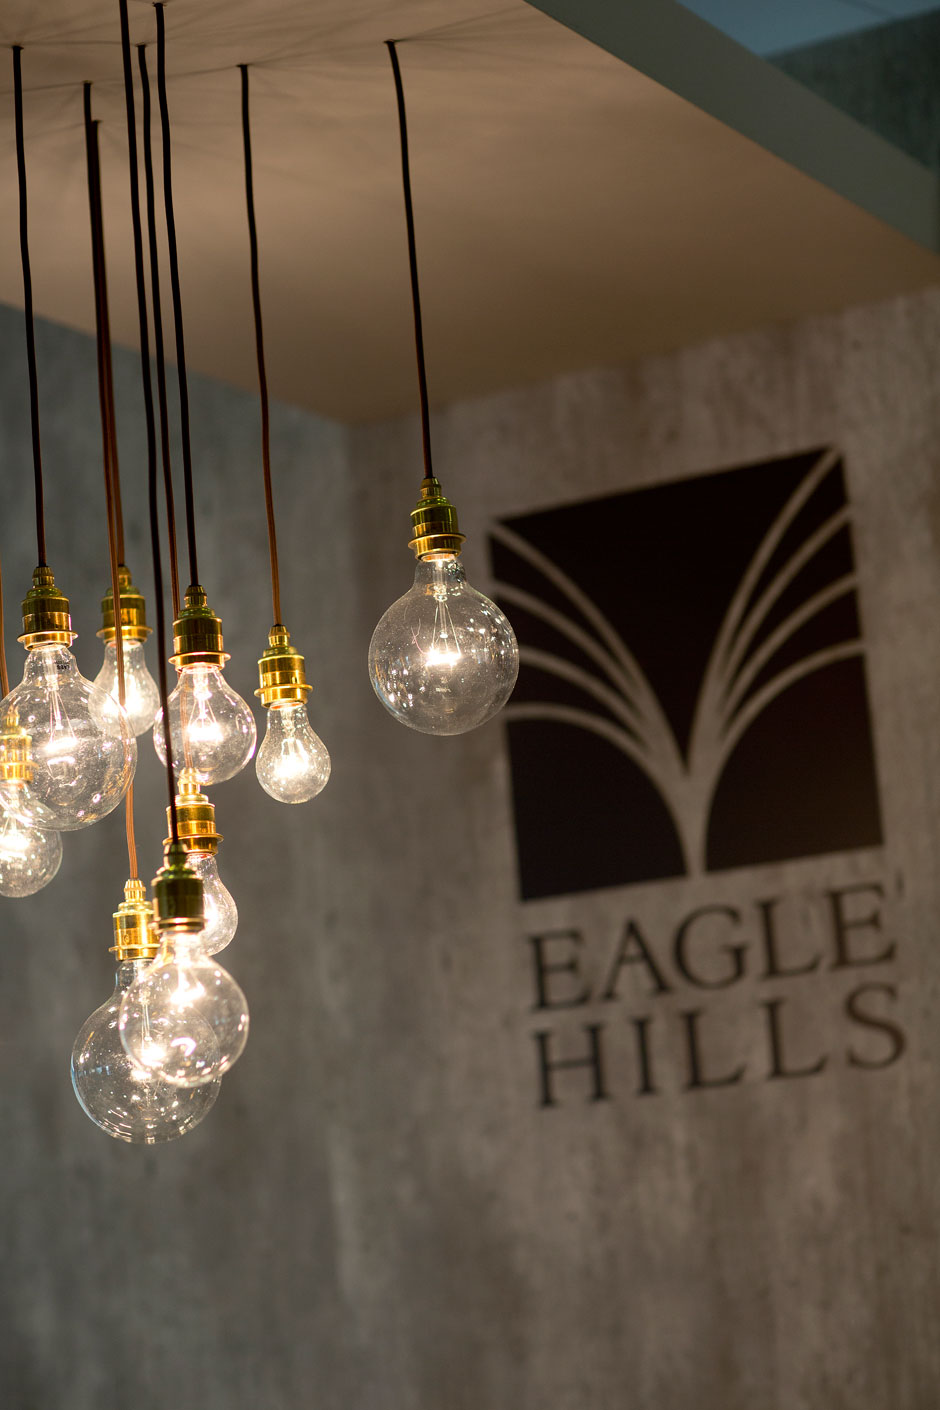 Eagle Hills Exhibition Stand, Palais Des Festivals, Cannes 2015